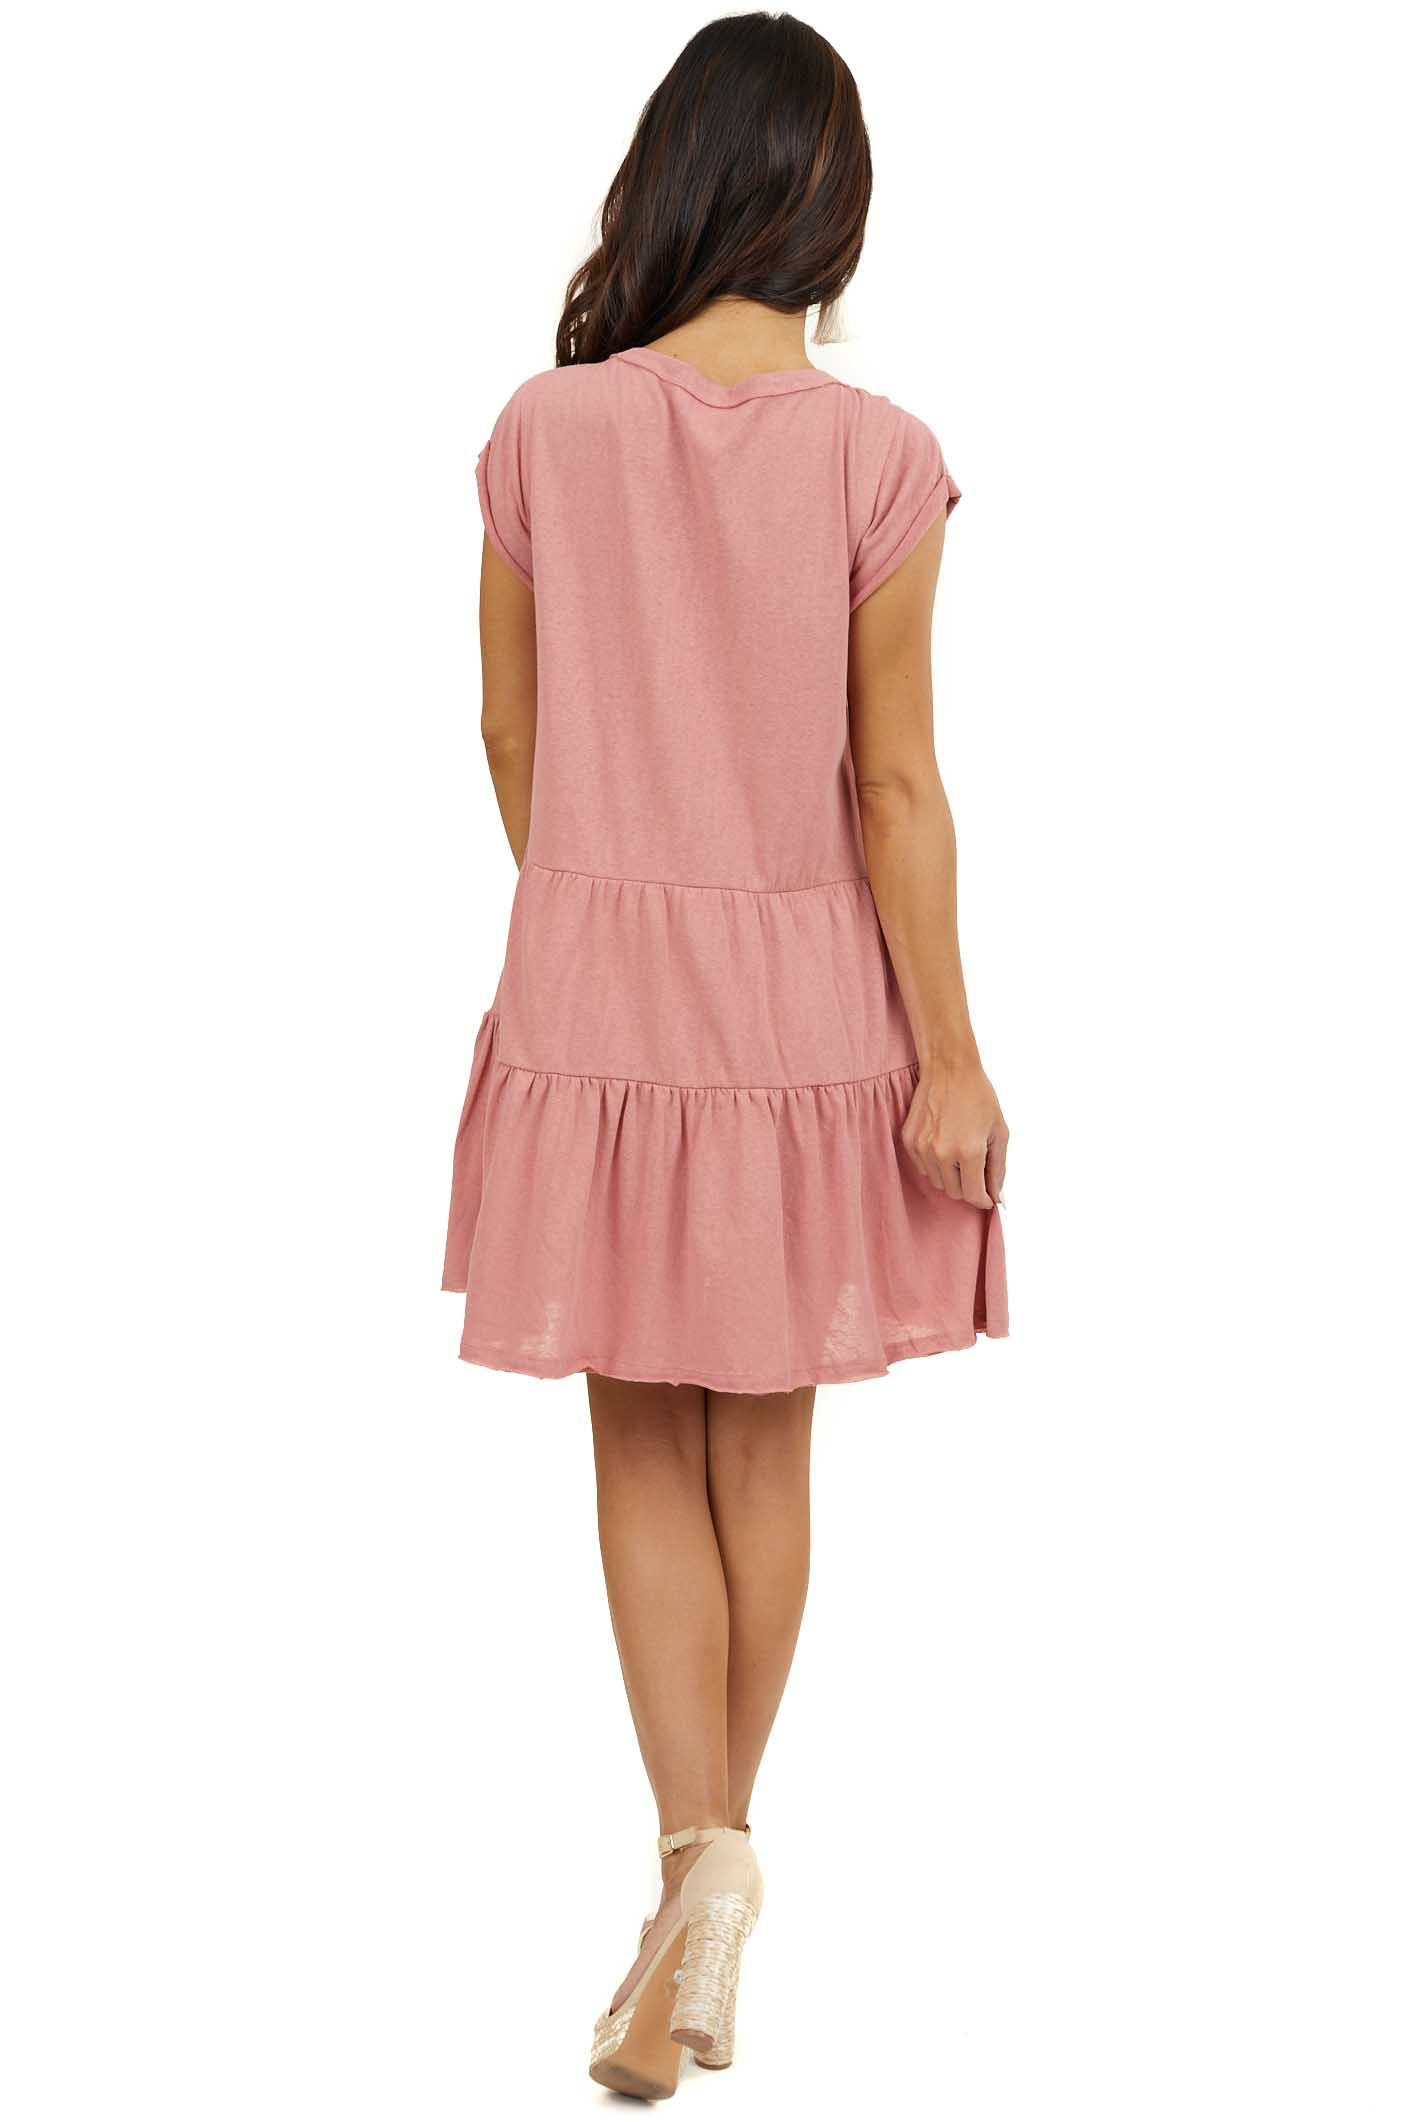 Dusty Blush Tiered Short Dress with Short Raw Sleeves